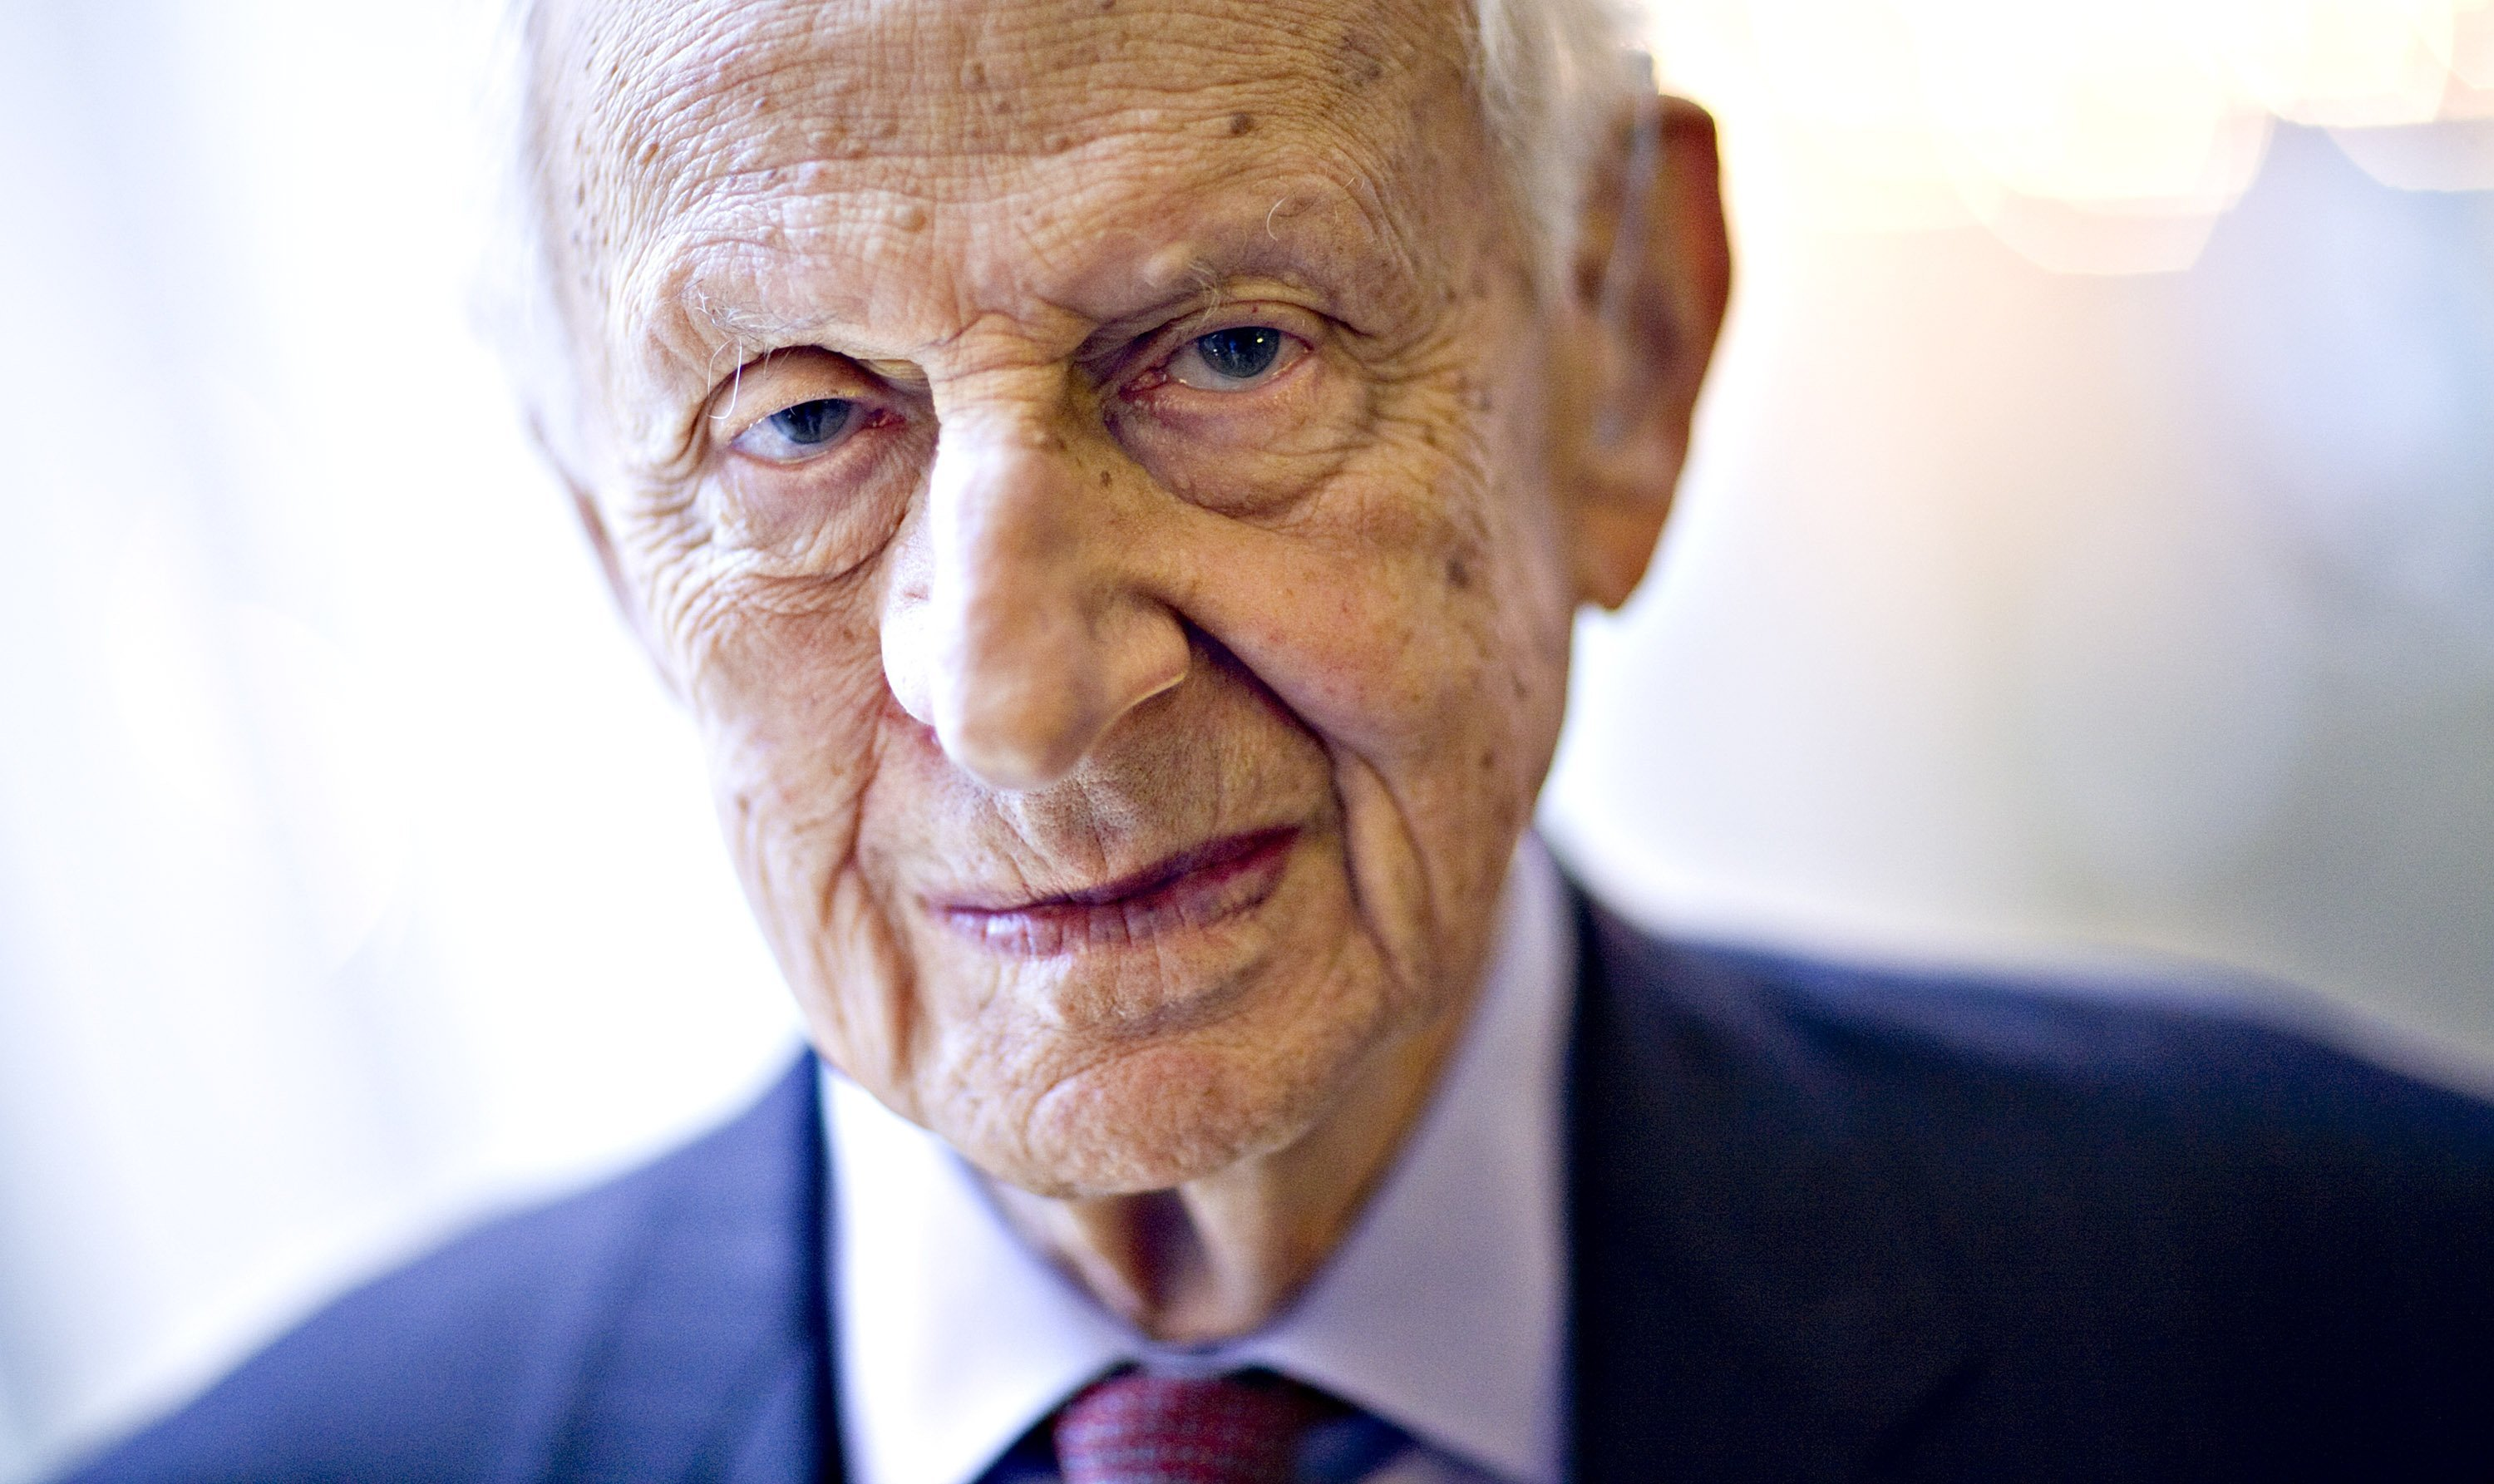 Robert Morgenthau, longtime Manhattan DA and 'Law & Order' inspiration, dies at 99